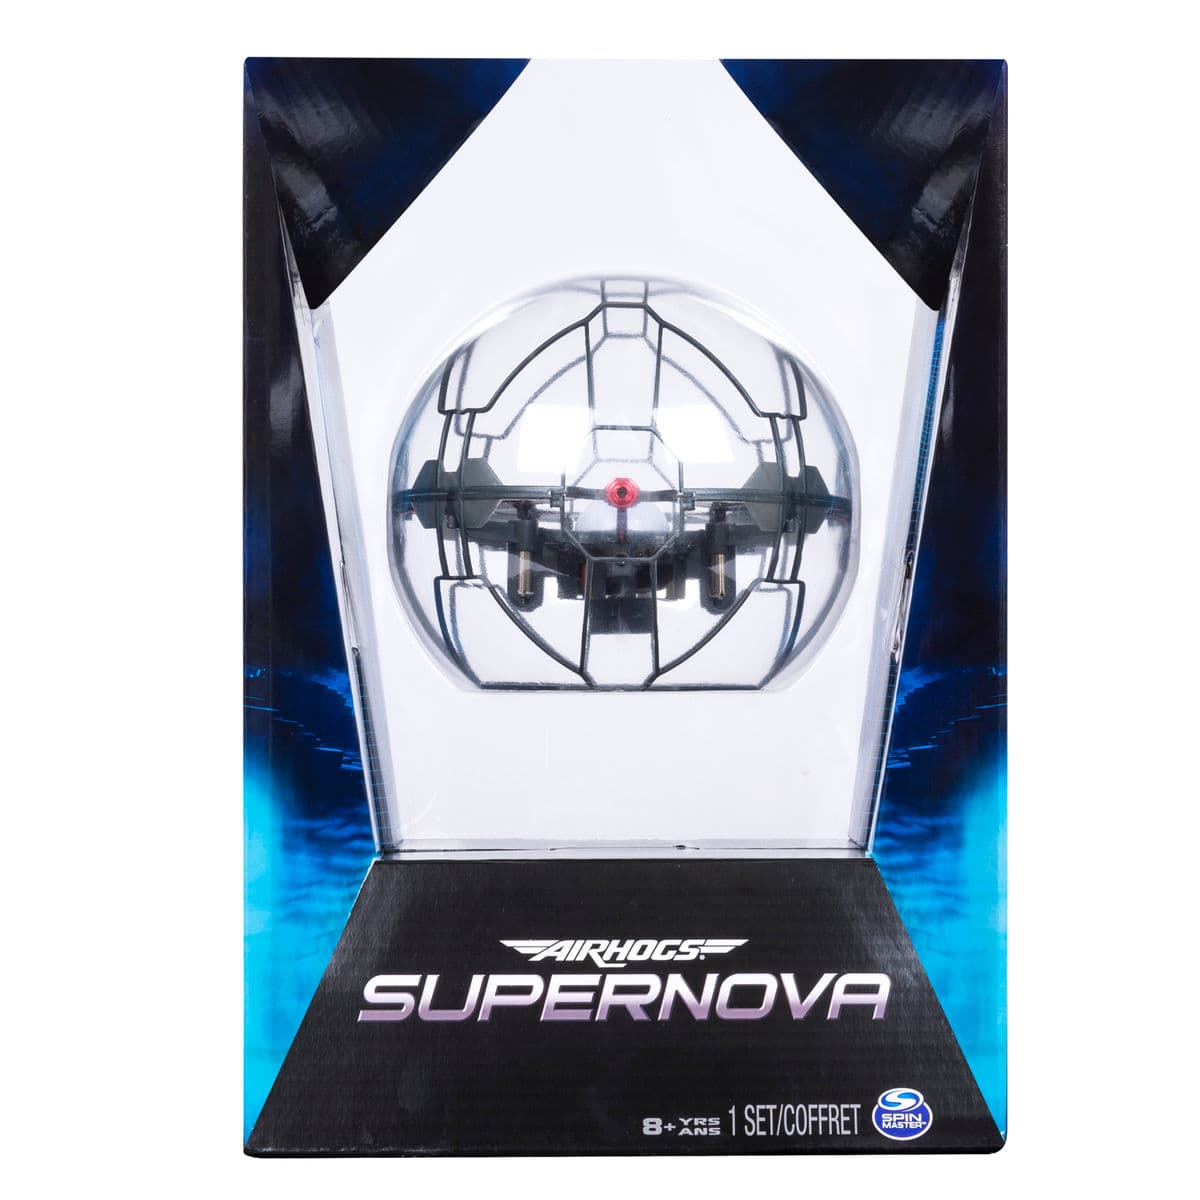 airhogs supernova